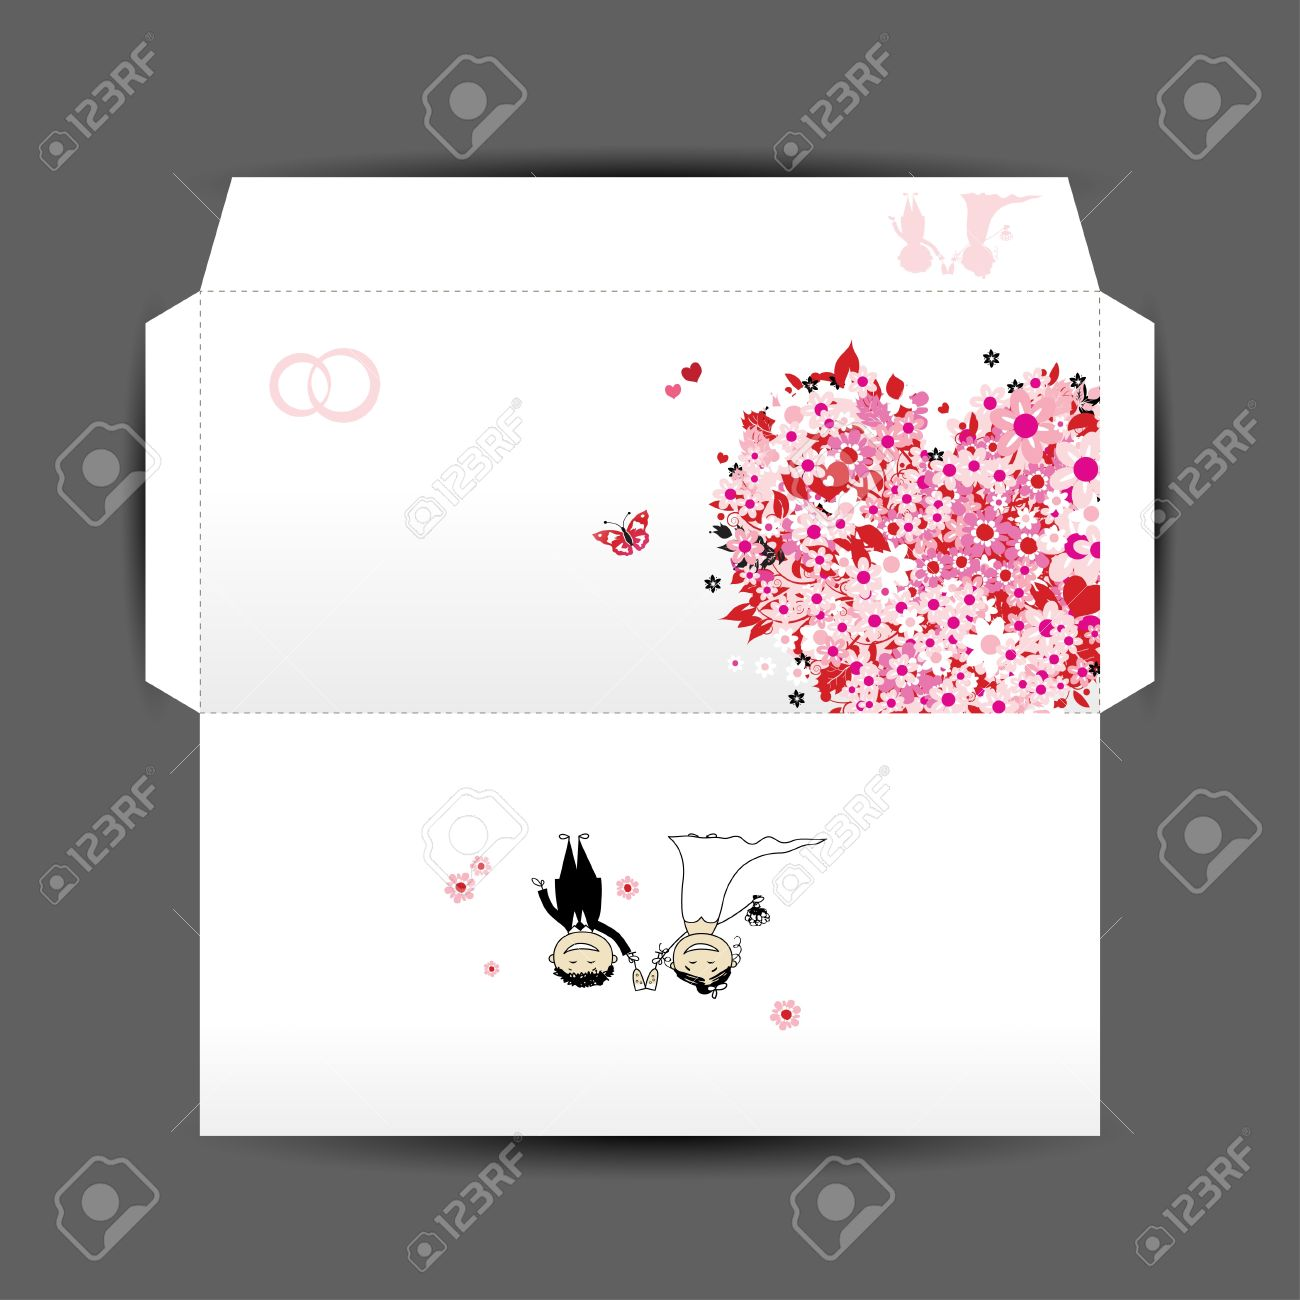 design of wedding envelope royalty free cliparts vectors and stock